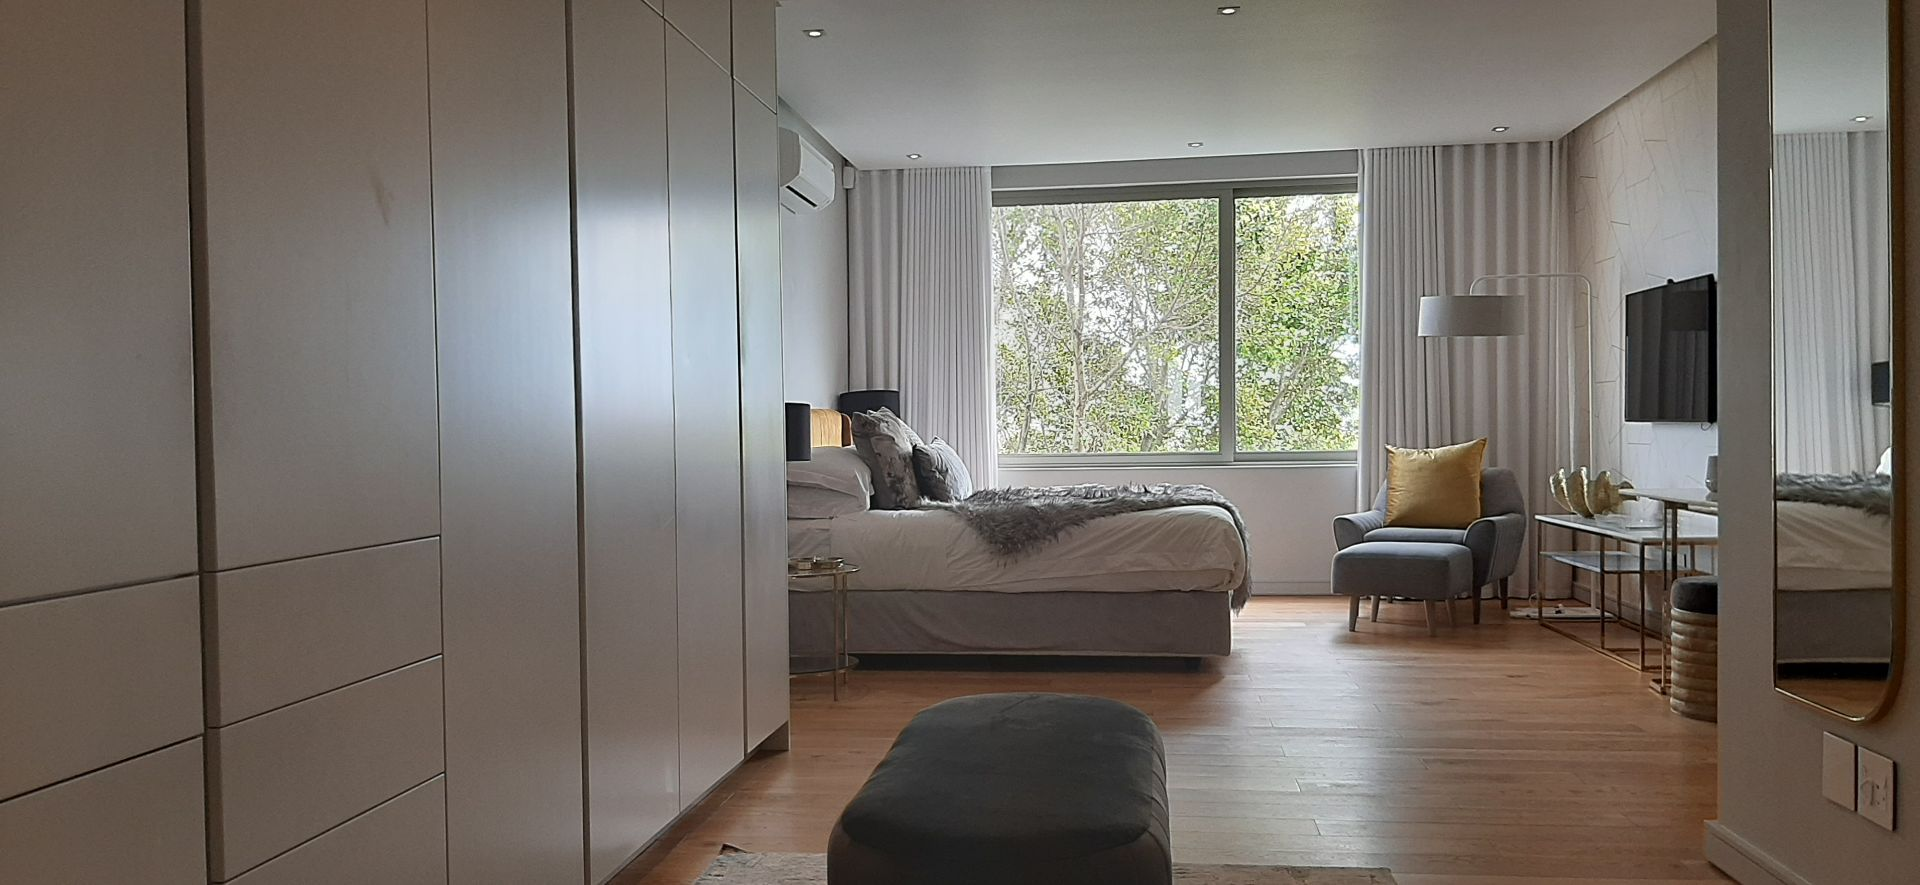 Apartment in Bantry Bay - Main bedroom (2).jpg